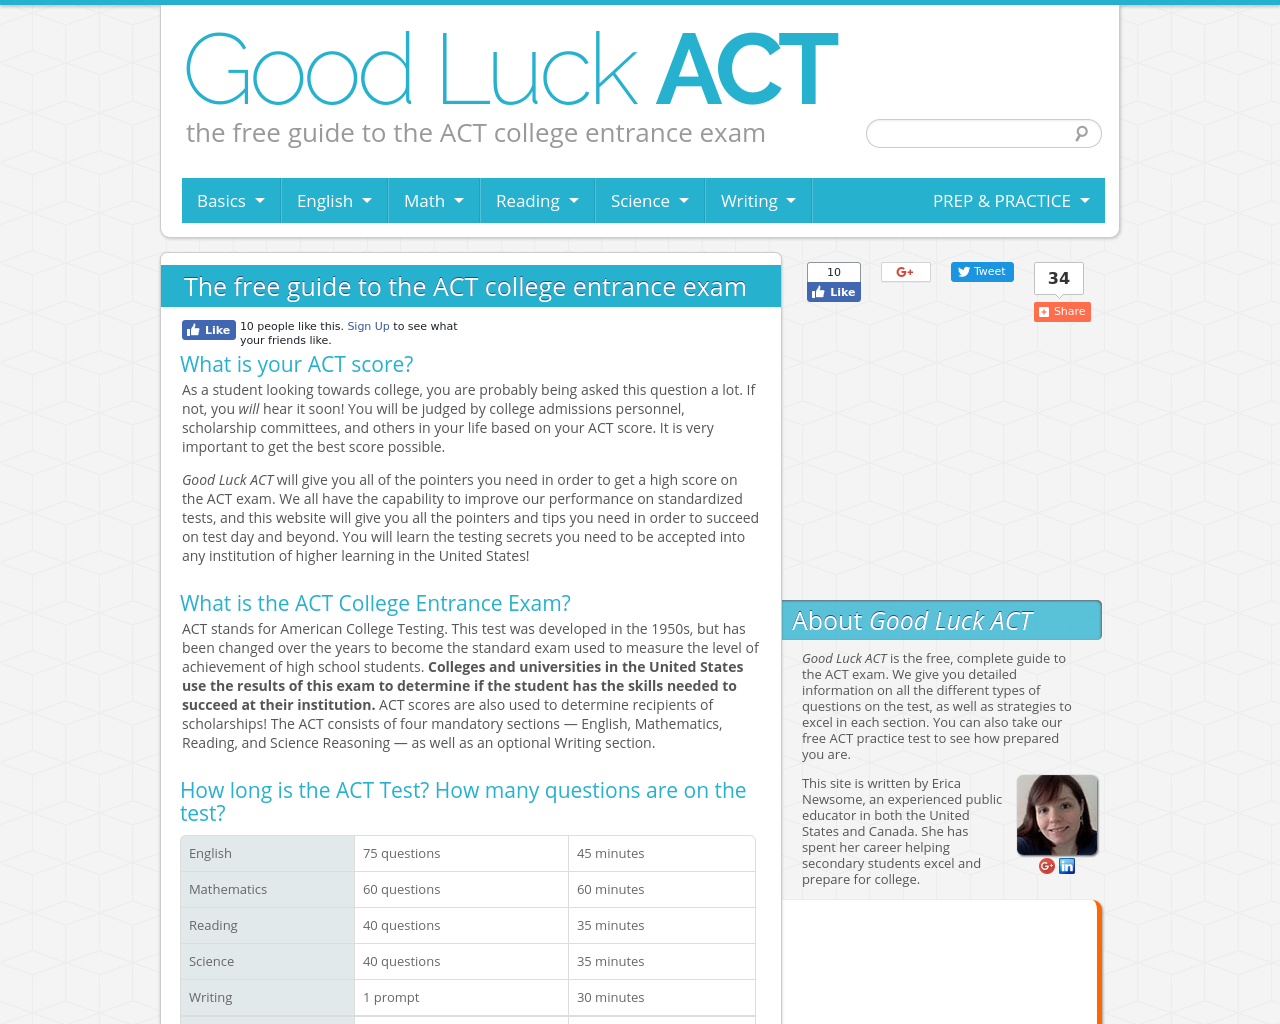 Good-Luck-ACT-Advertising-Reviews-Pricing